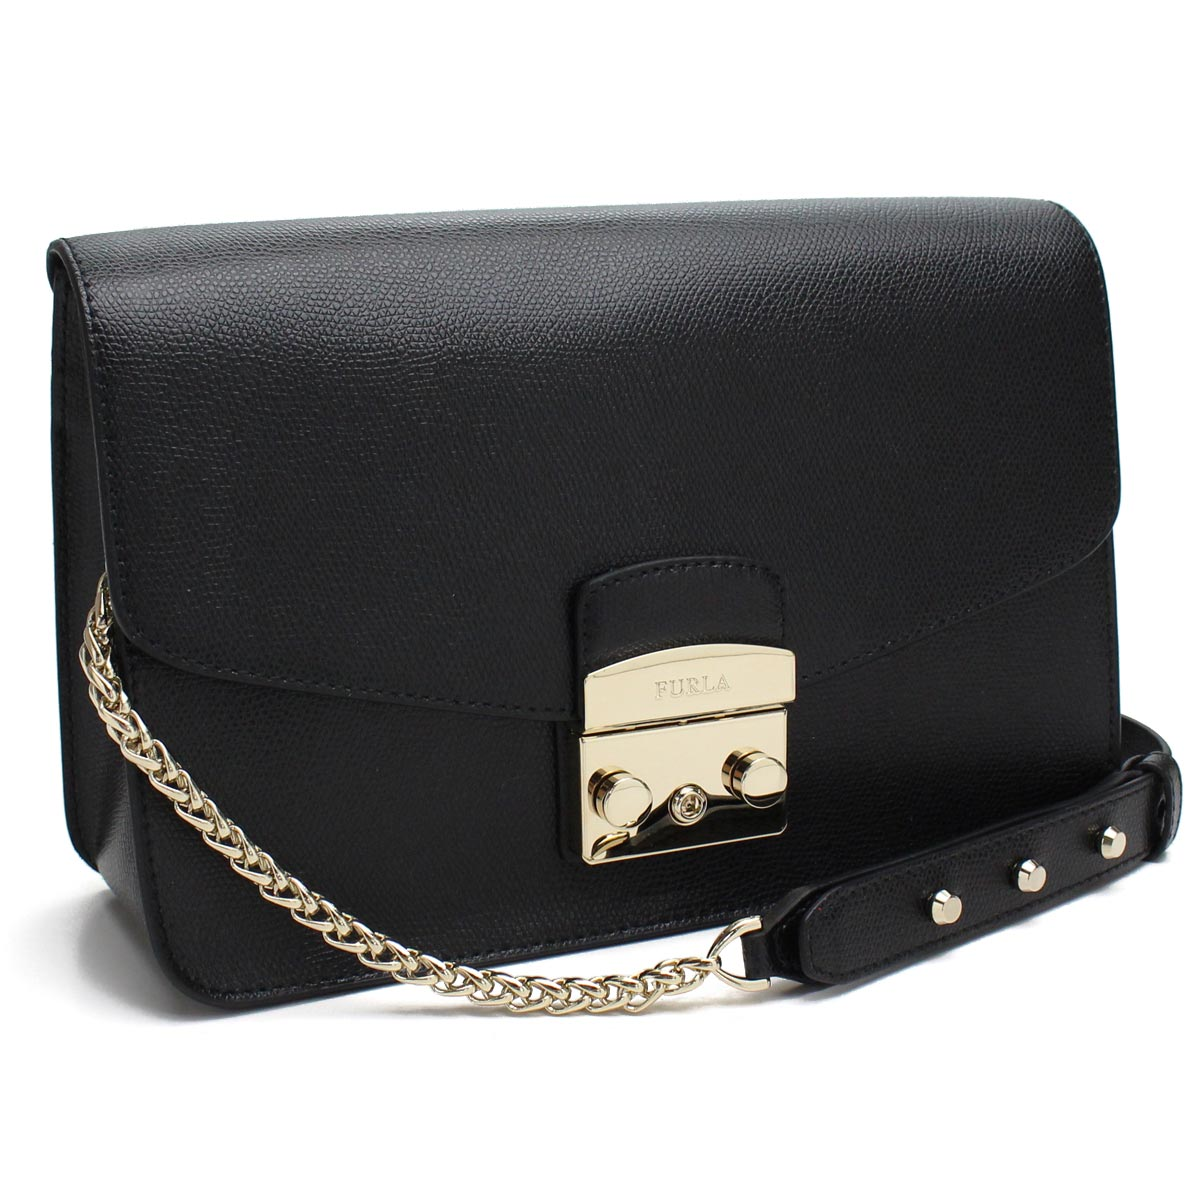 09f957c0b0 Bighit The total brand wholesale  フルラ FURLA METROPOLIS metropolis chain  shoulder bag BHV7 835166 ARE O60 ONYX black